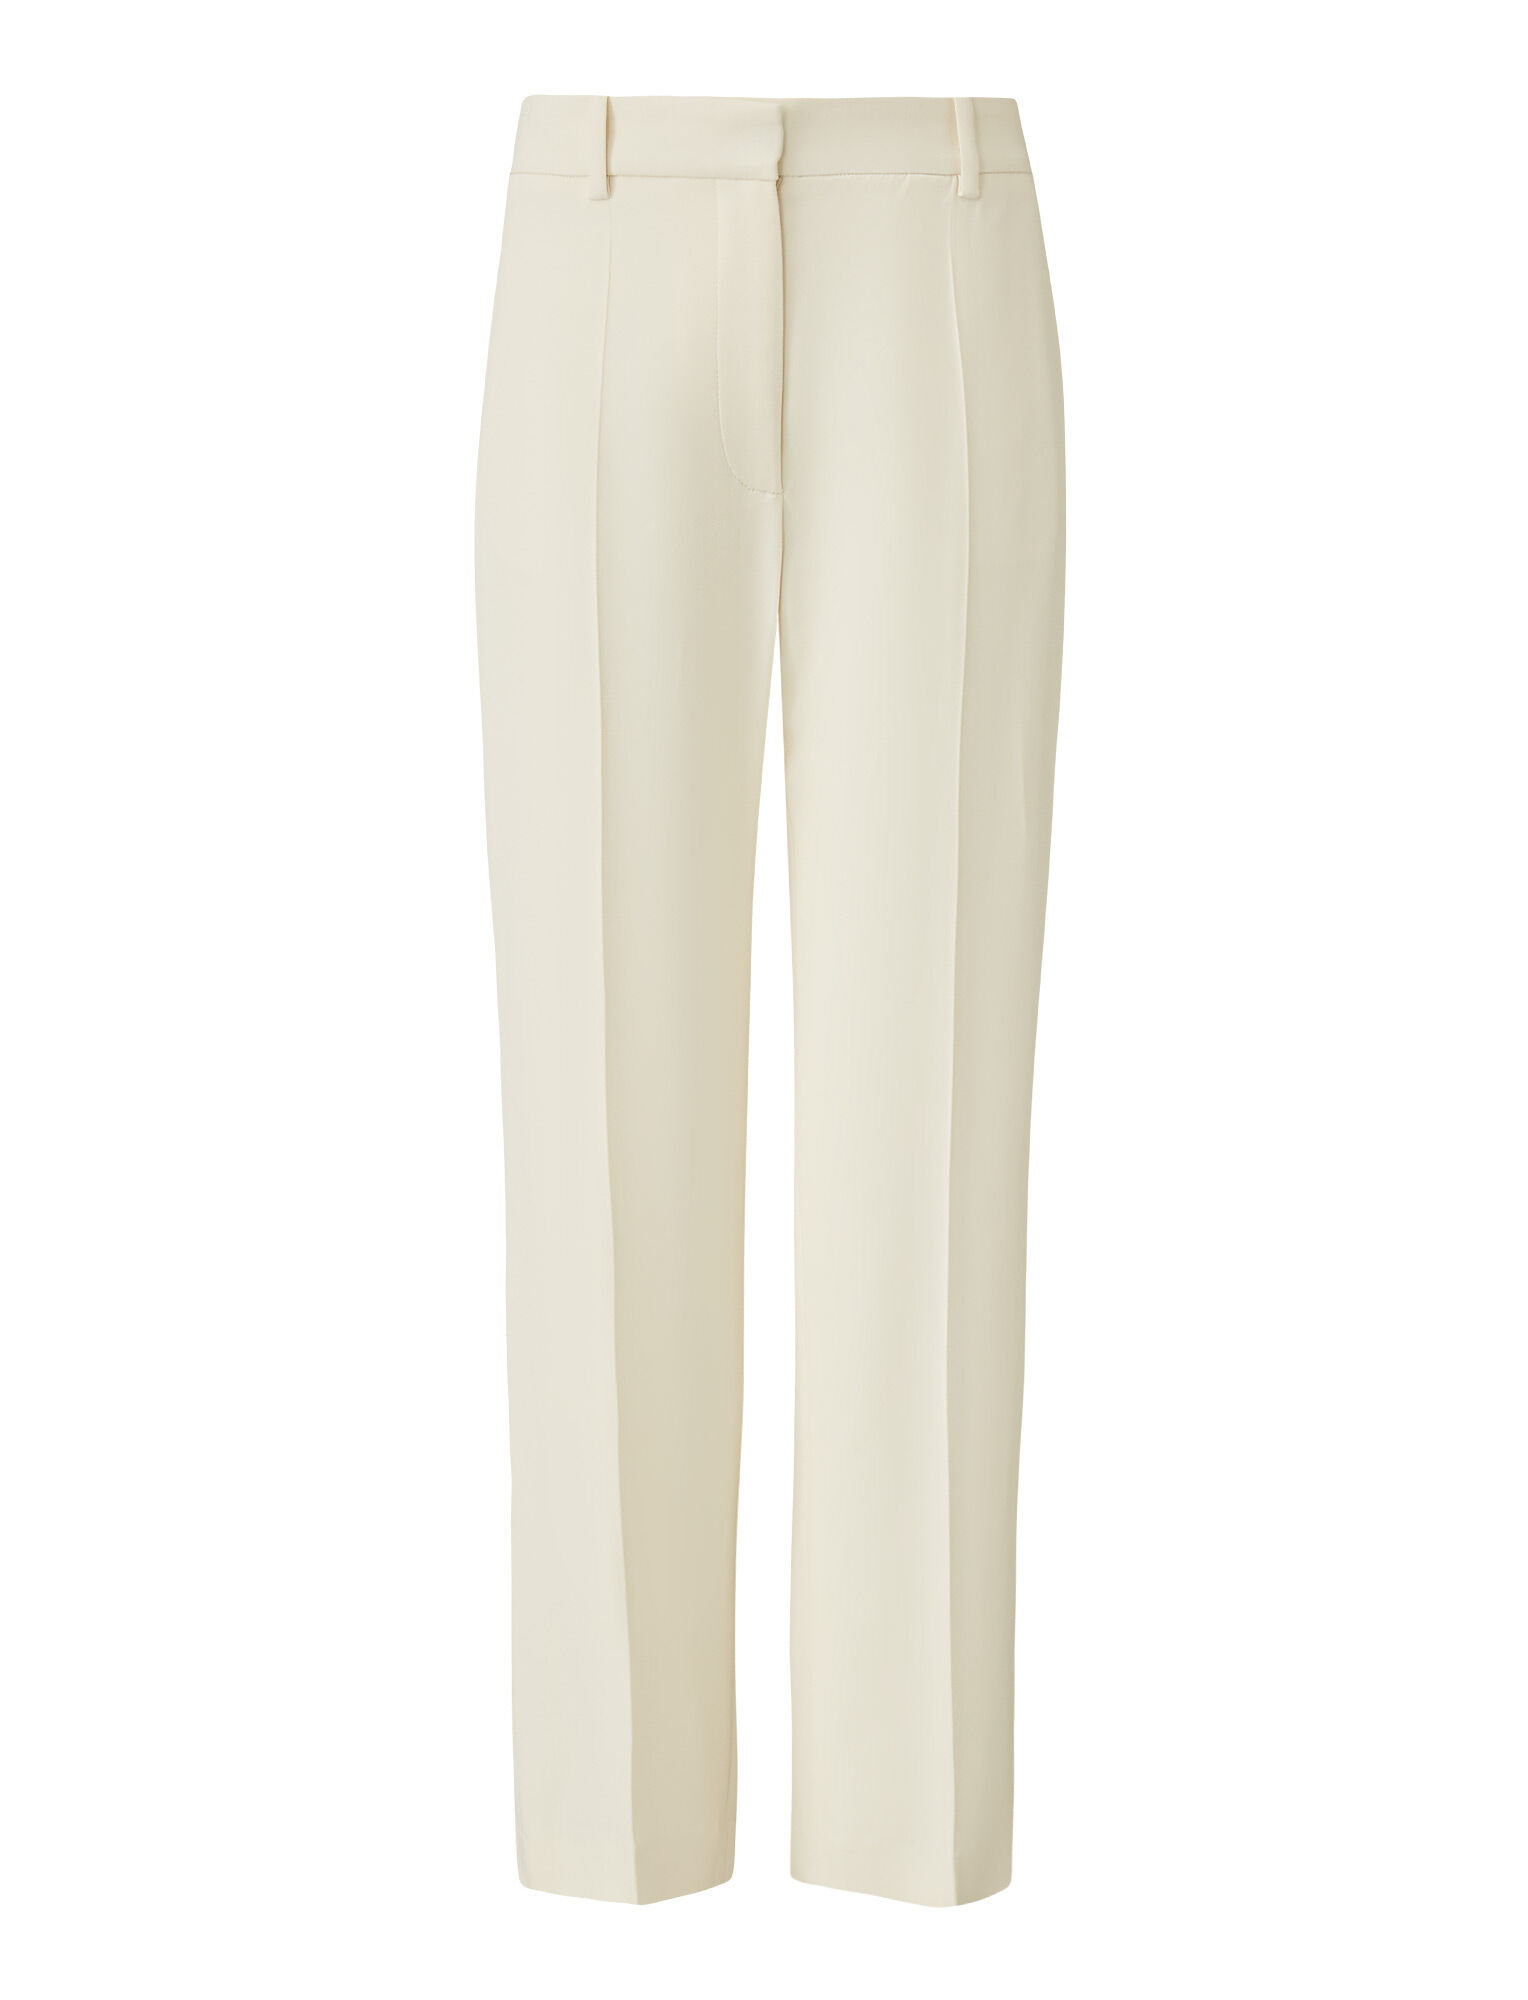 Joseph, Coleman Stretch Cady Trousers, in IVORY